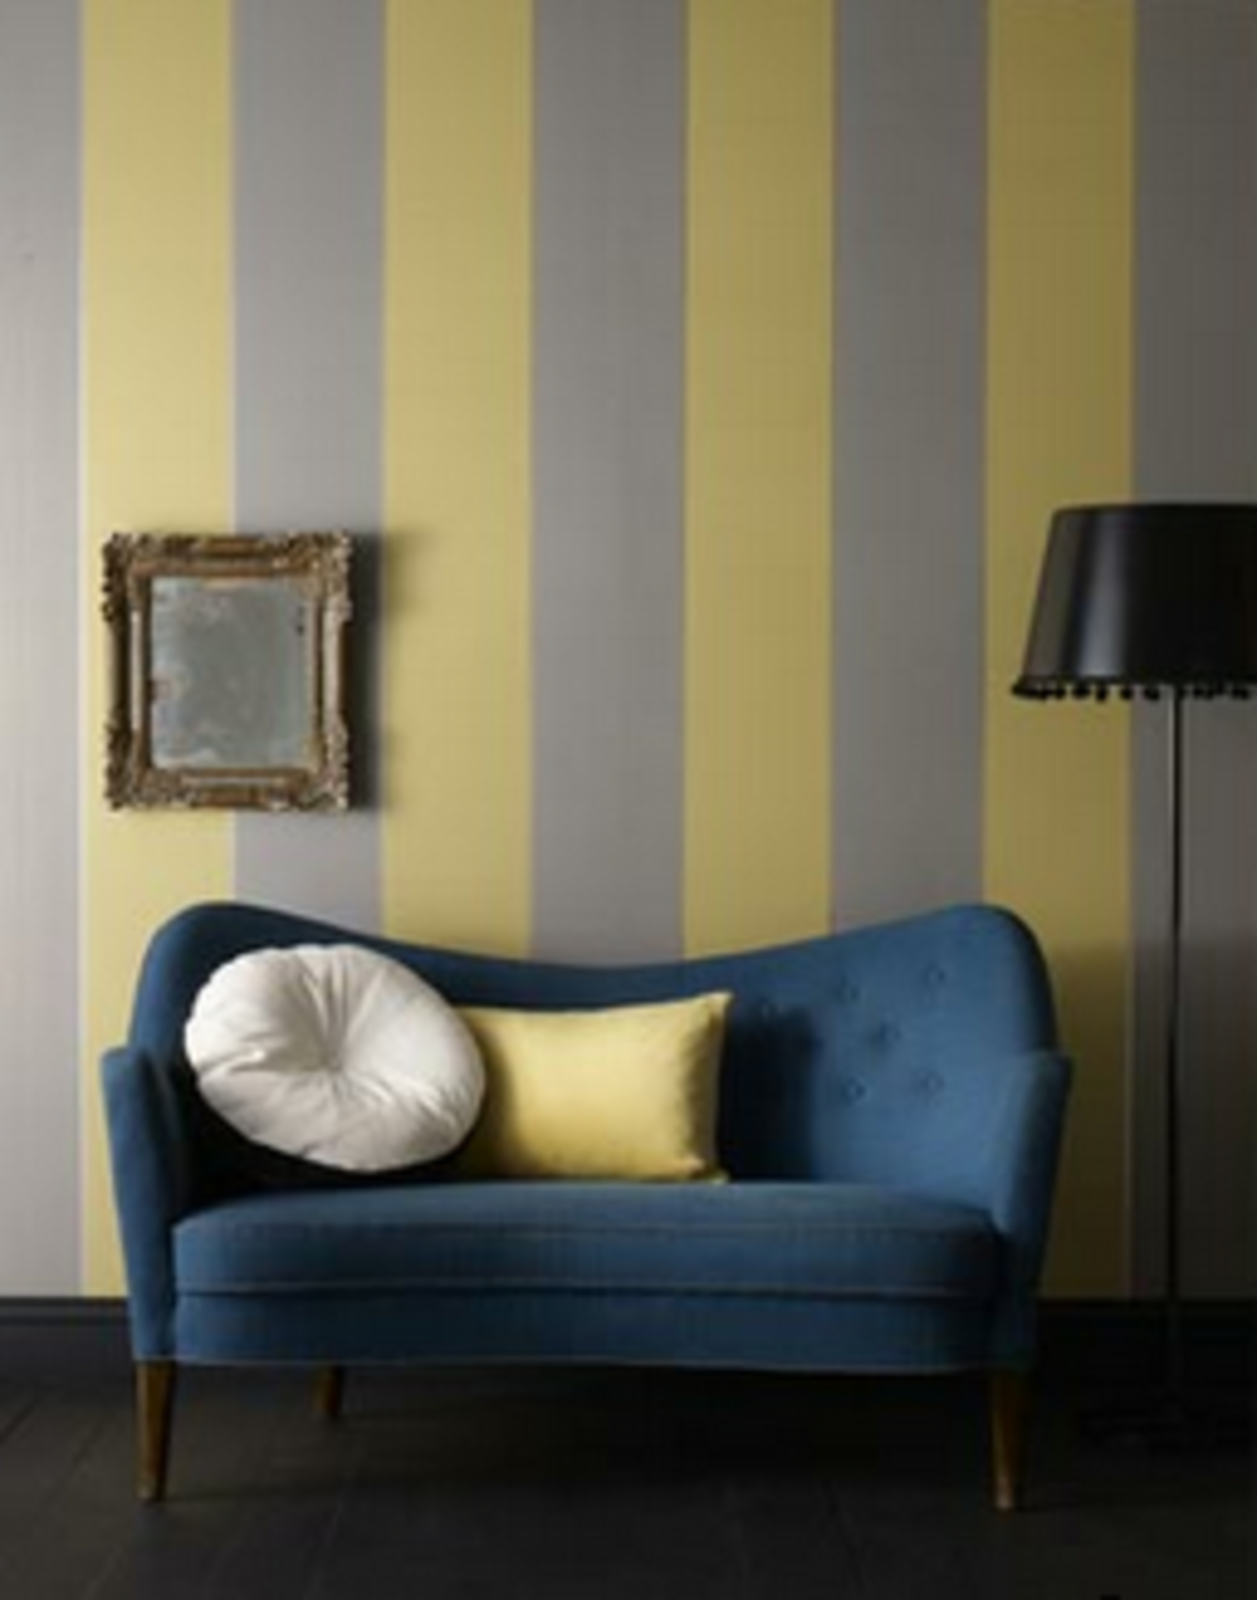 Living Room, Sofa, and Floor Lighting Imperial Wallpaper   From designer staple Graham & Brown, the muted gray and mustard stripes pair nicely with the warm tones in mid-century furniture, $75 per roll.  Photo 13 of 14 in 7 Wallpaper Designs That Will Instantly Revamp Your Space from To the Walls